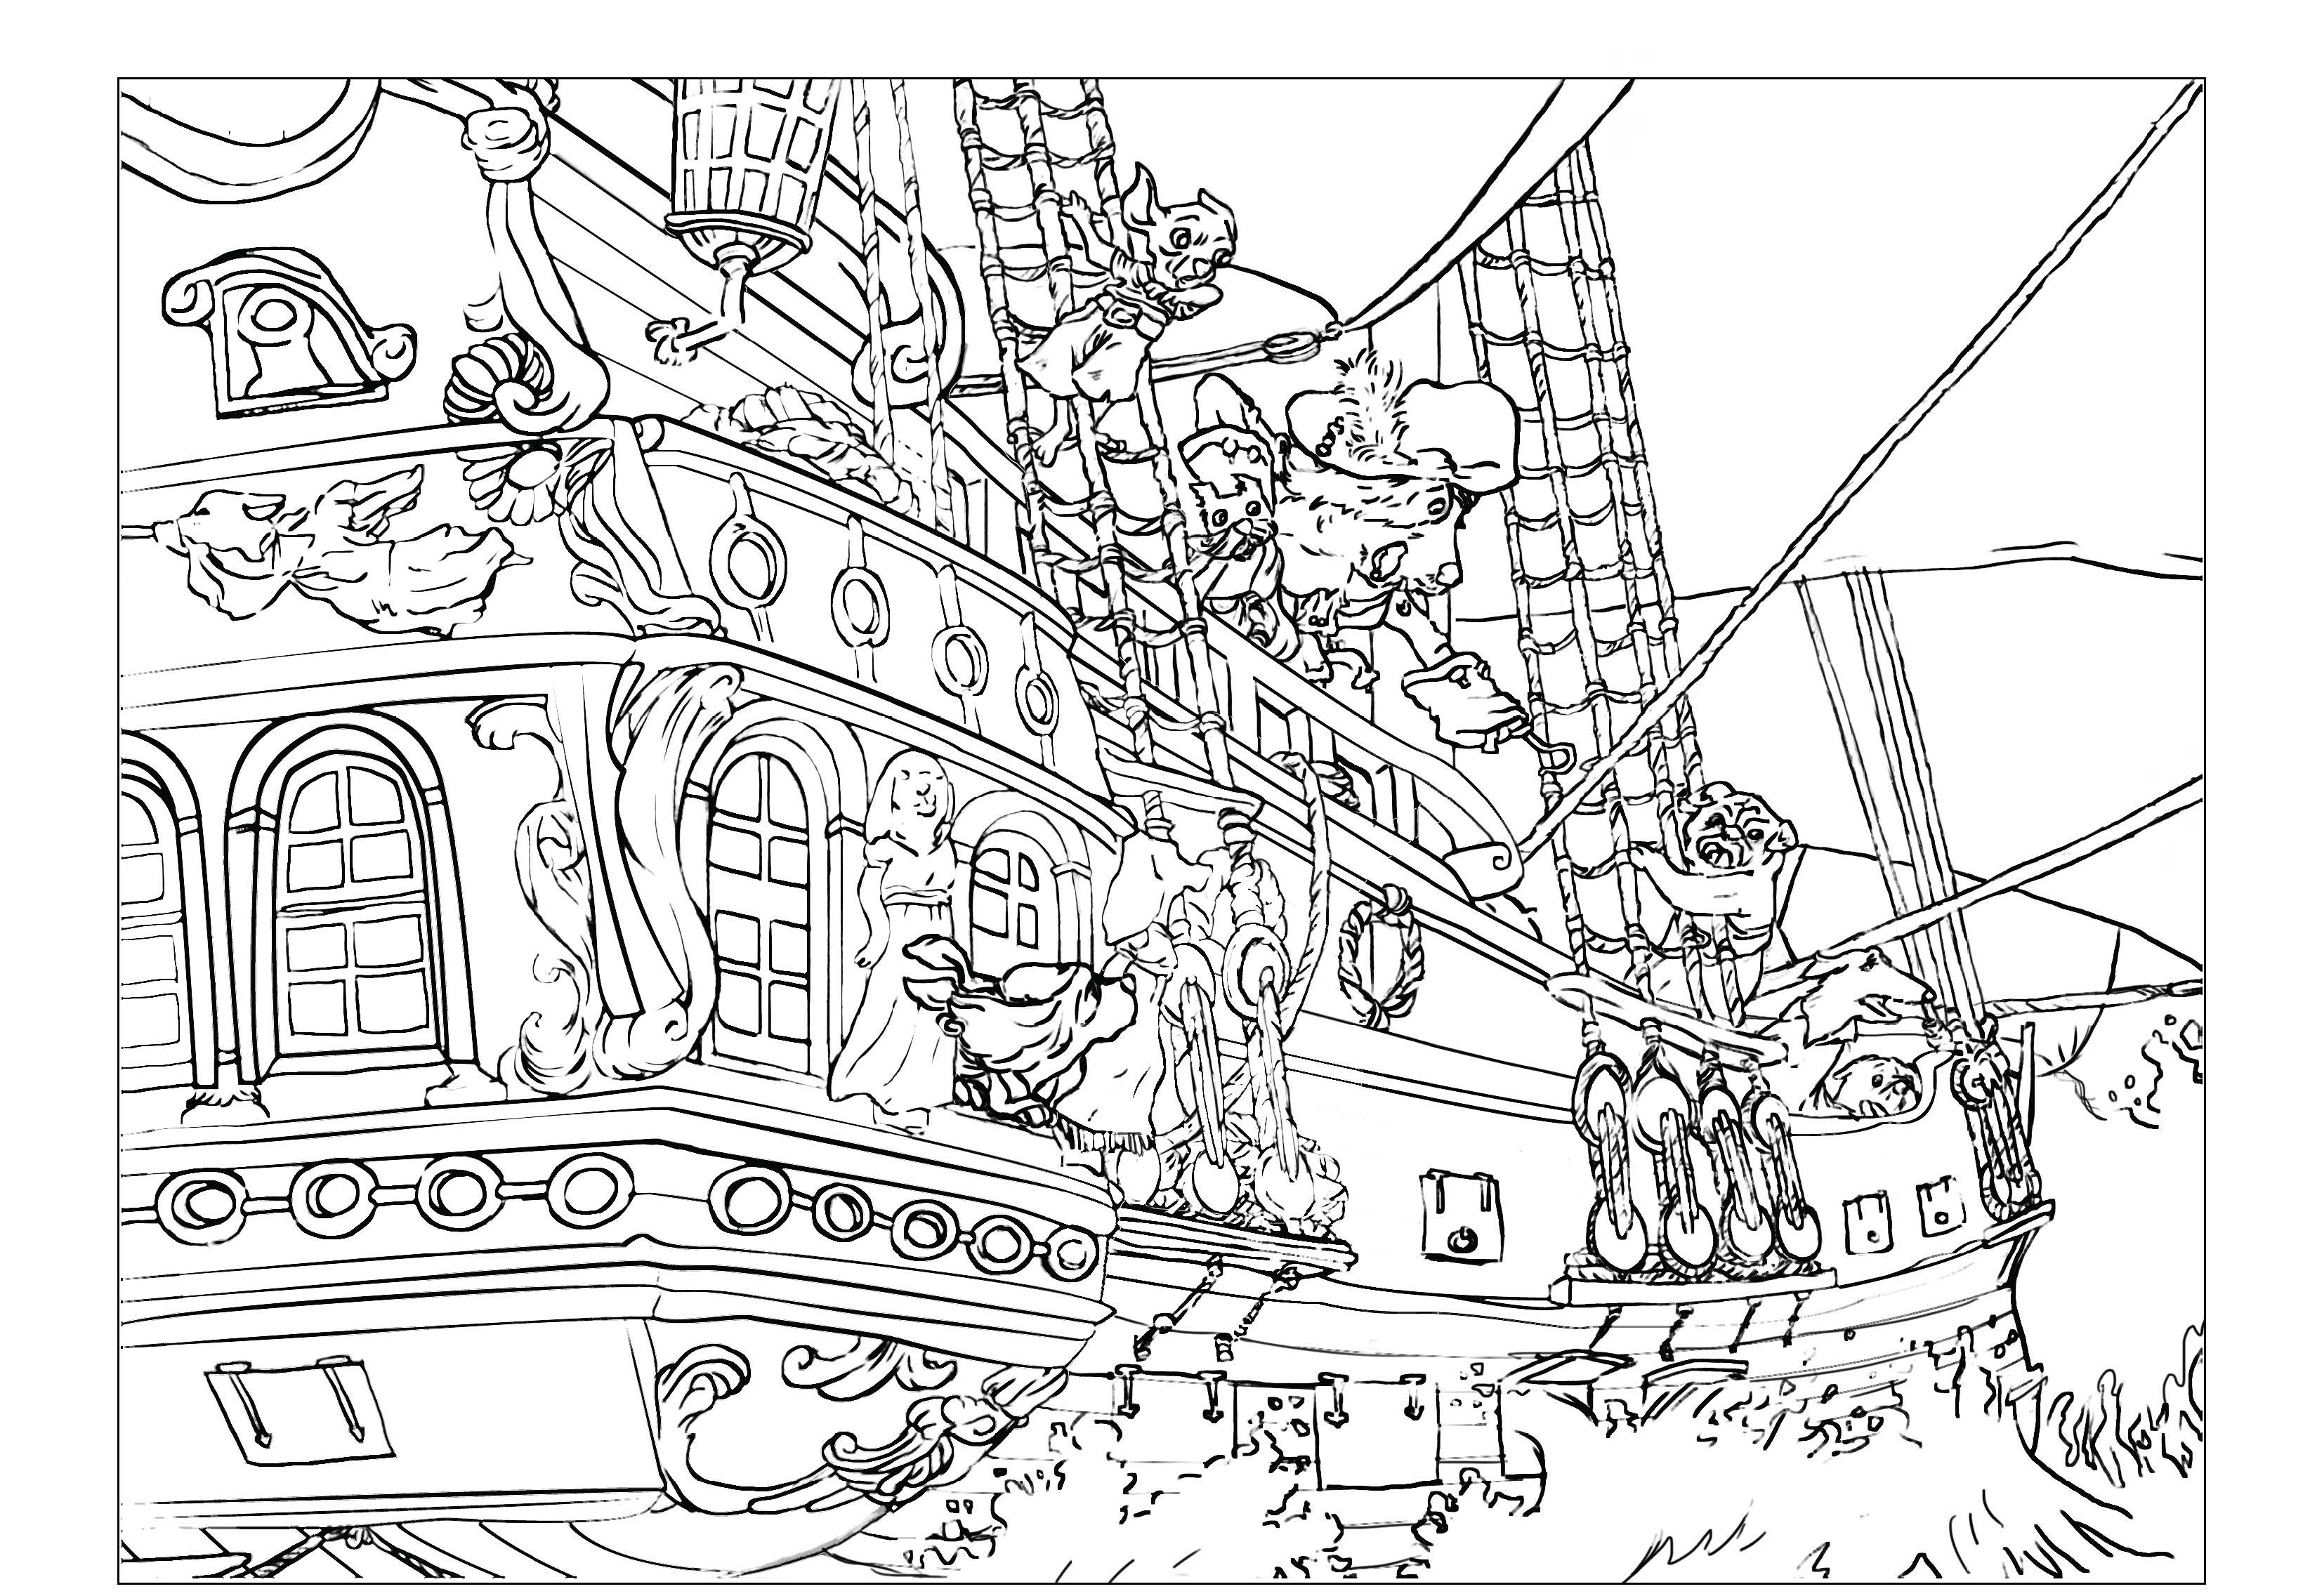 pirate images to color free printable pirate coloring pages for kids images pirate to color